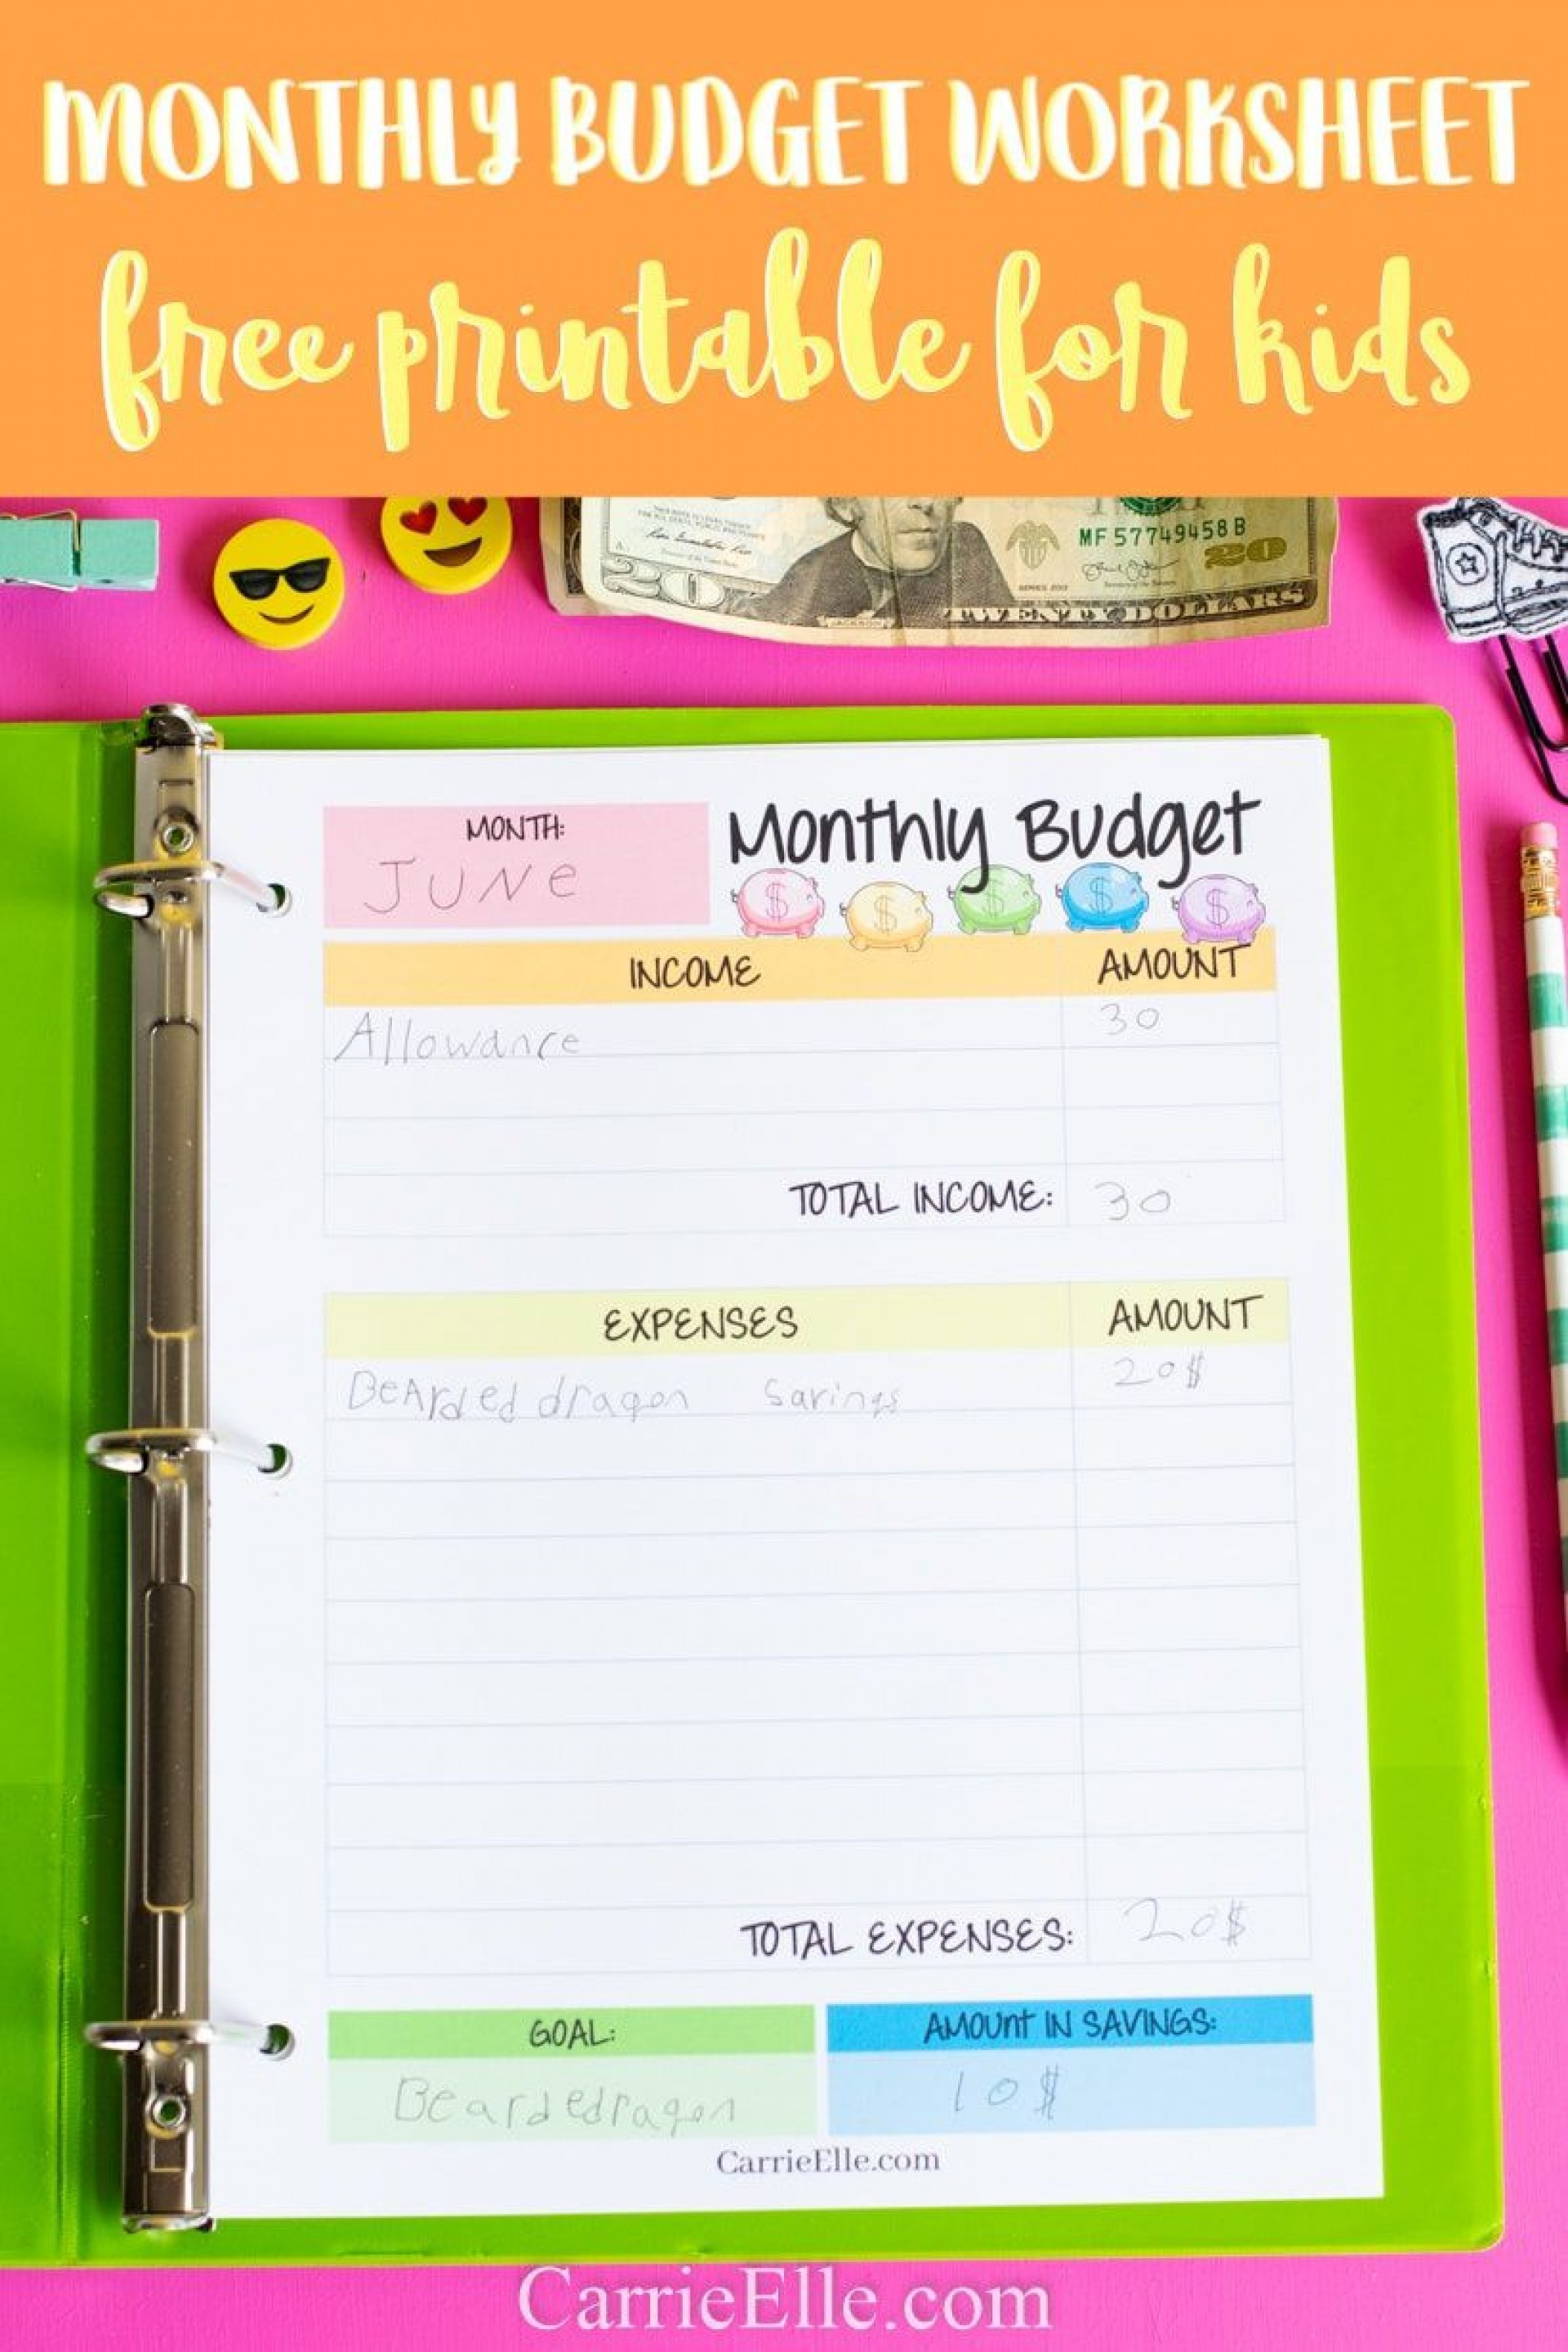 009 Stirring Free Monthly Budget Worksheet Printable Image  Template Family Blank1920